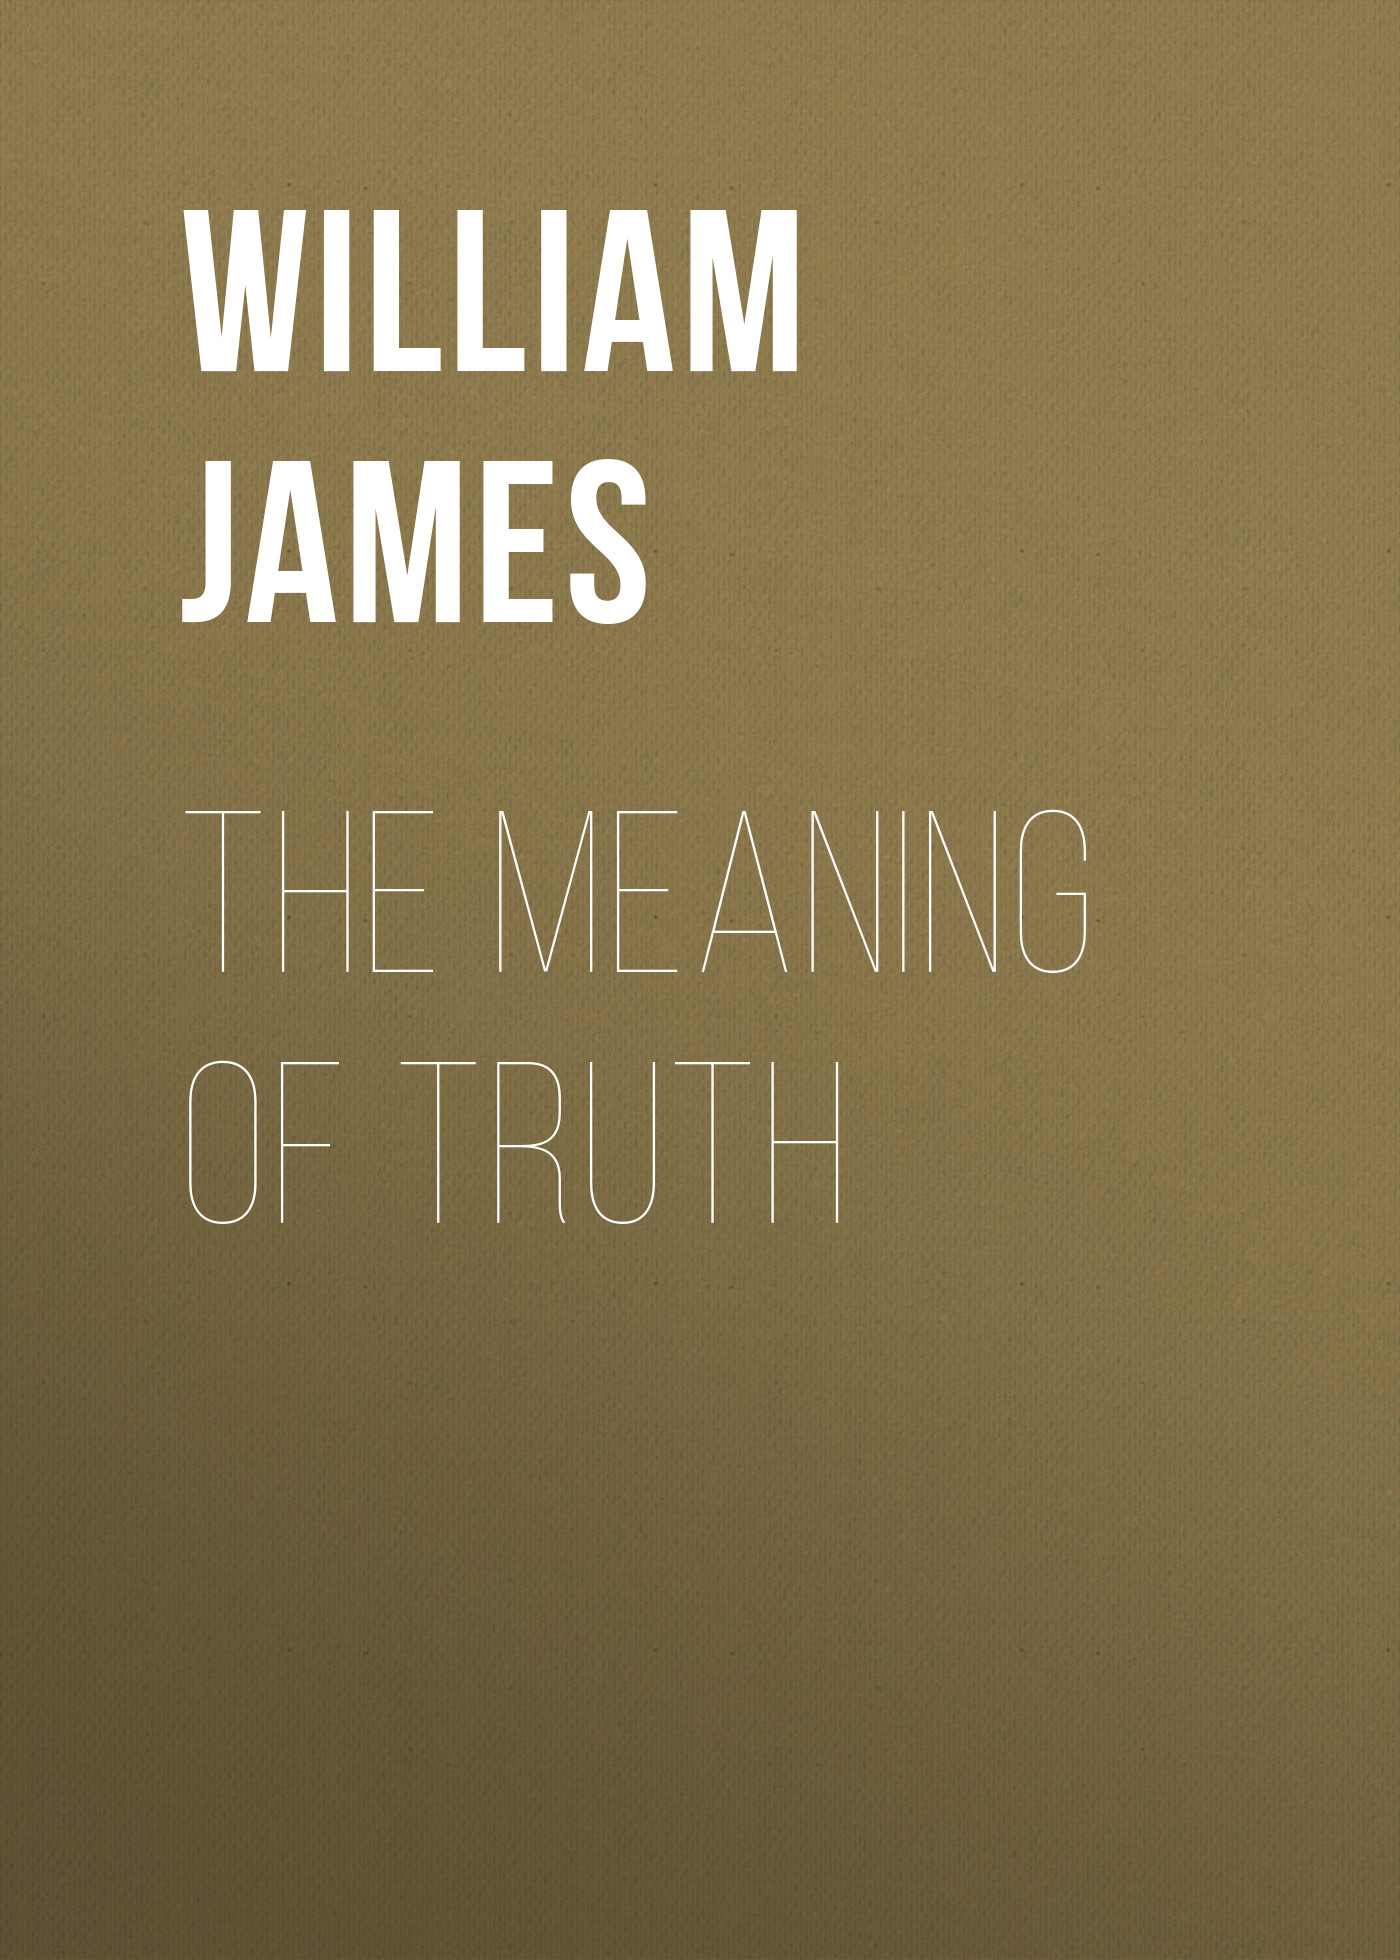 William James The Meaning of Truth the house of truth